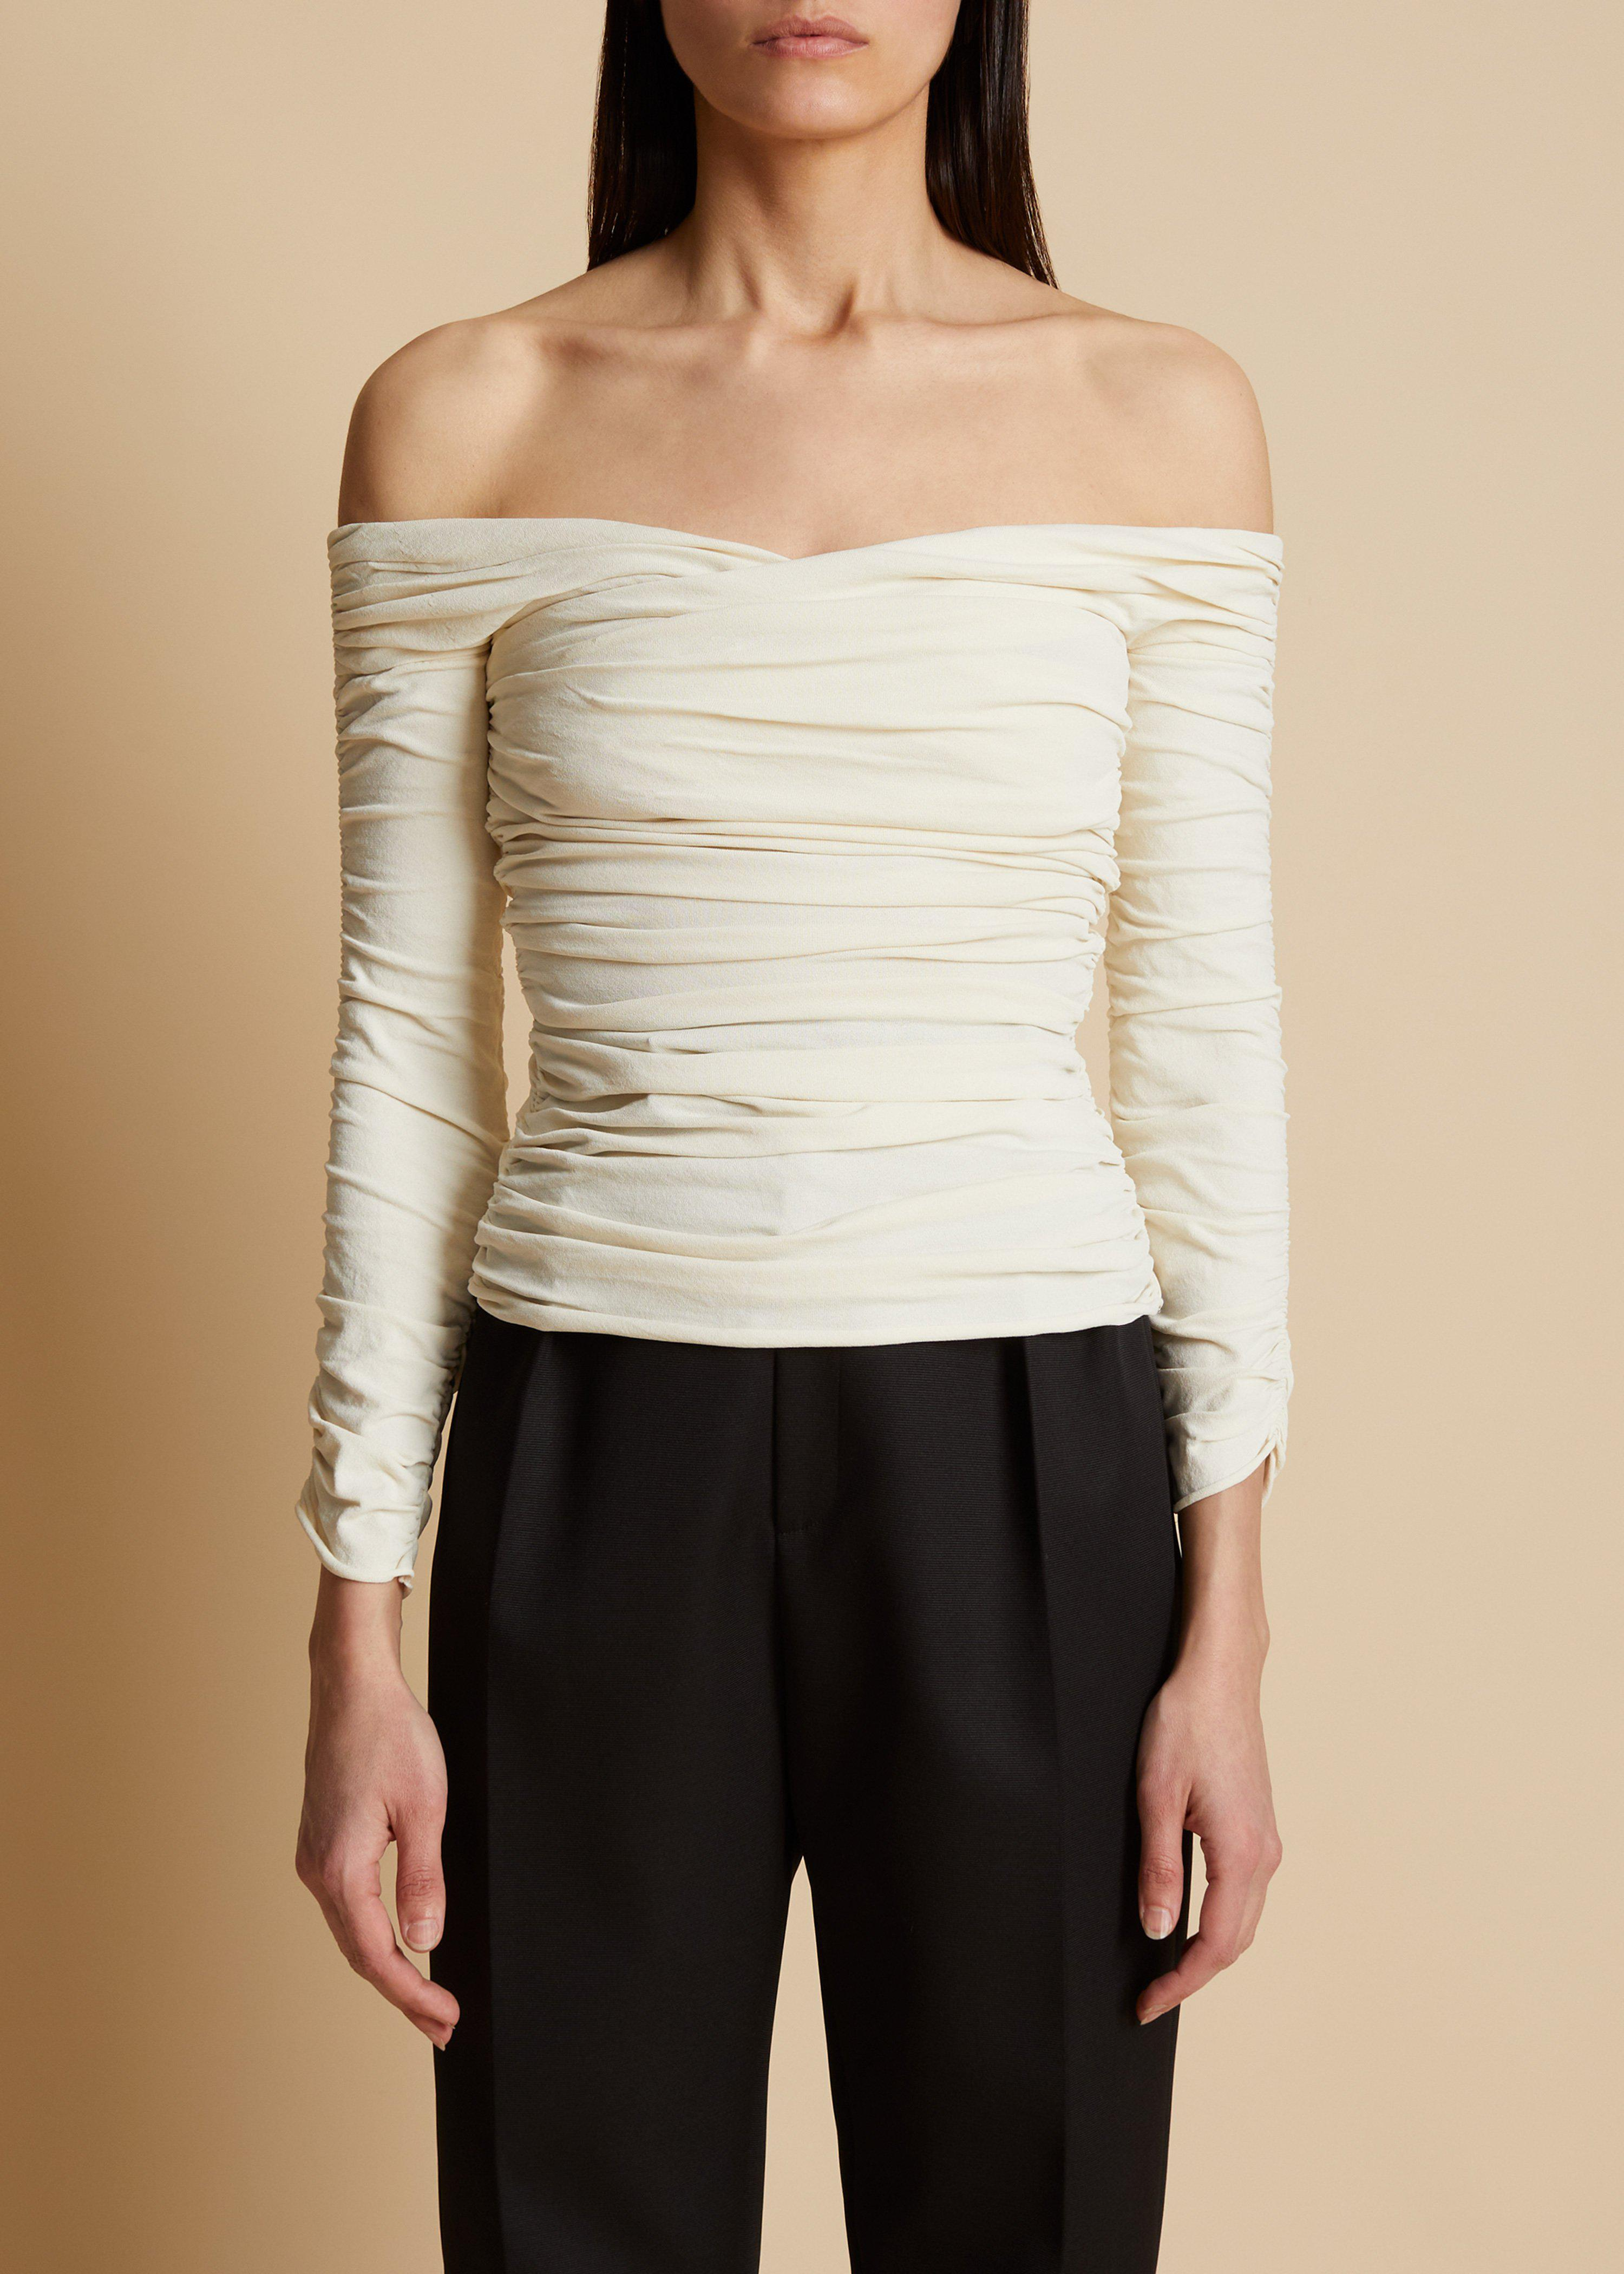 The Elsa Top in Ivory